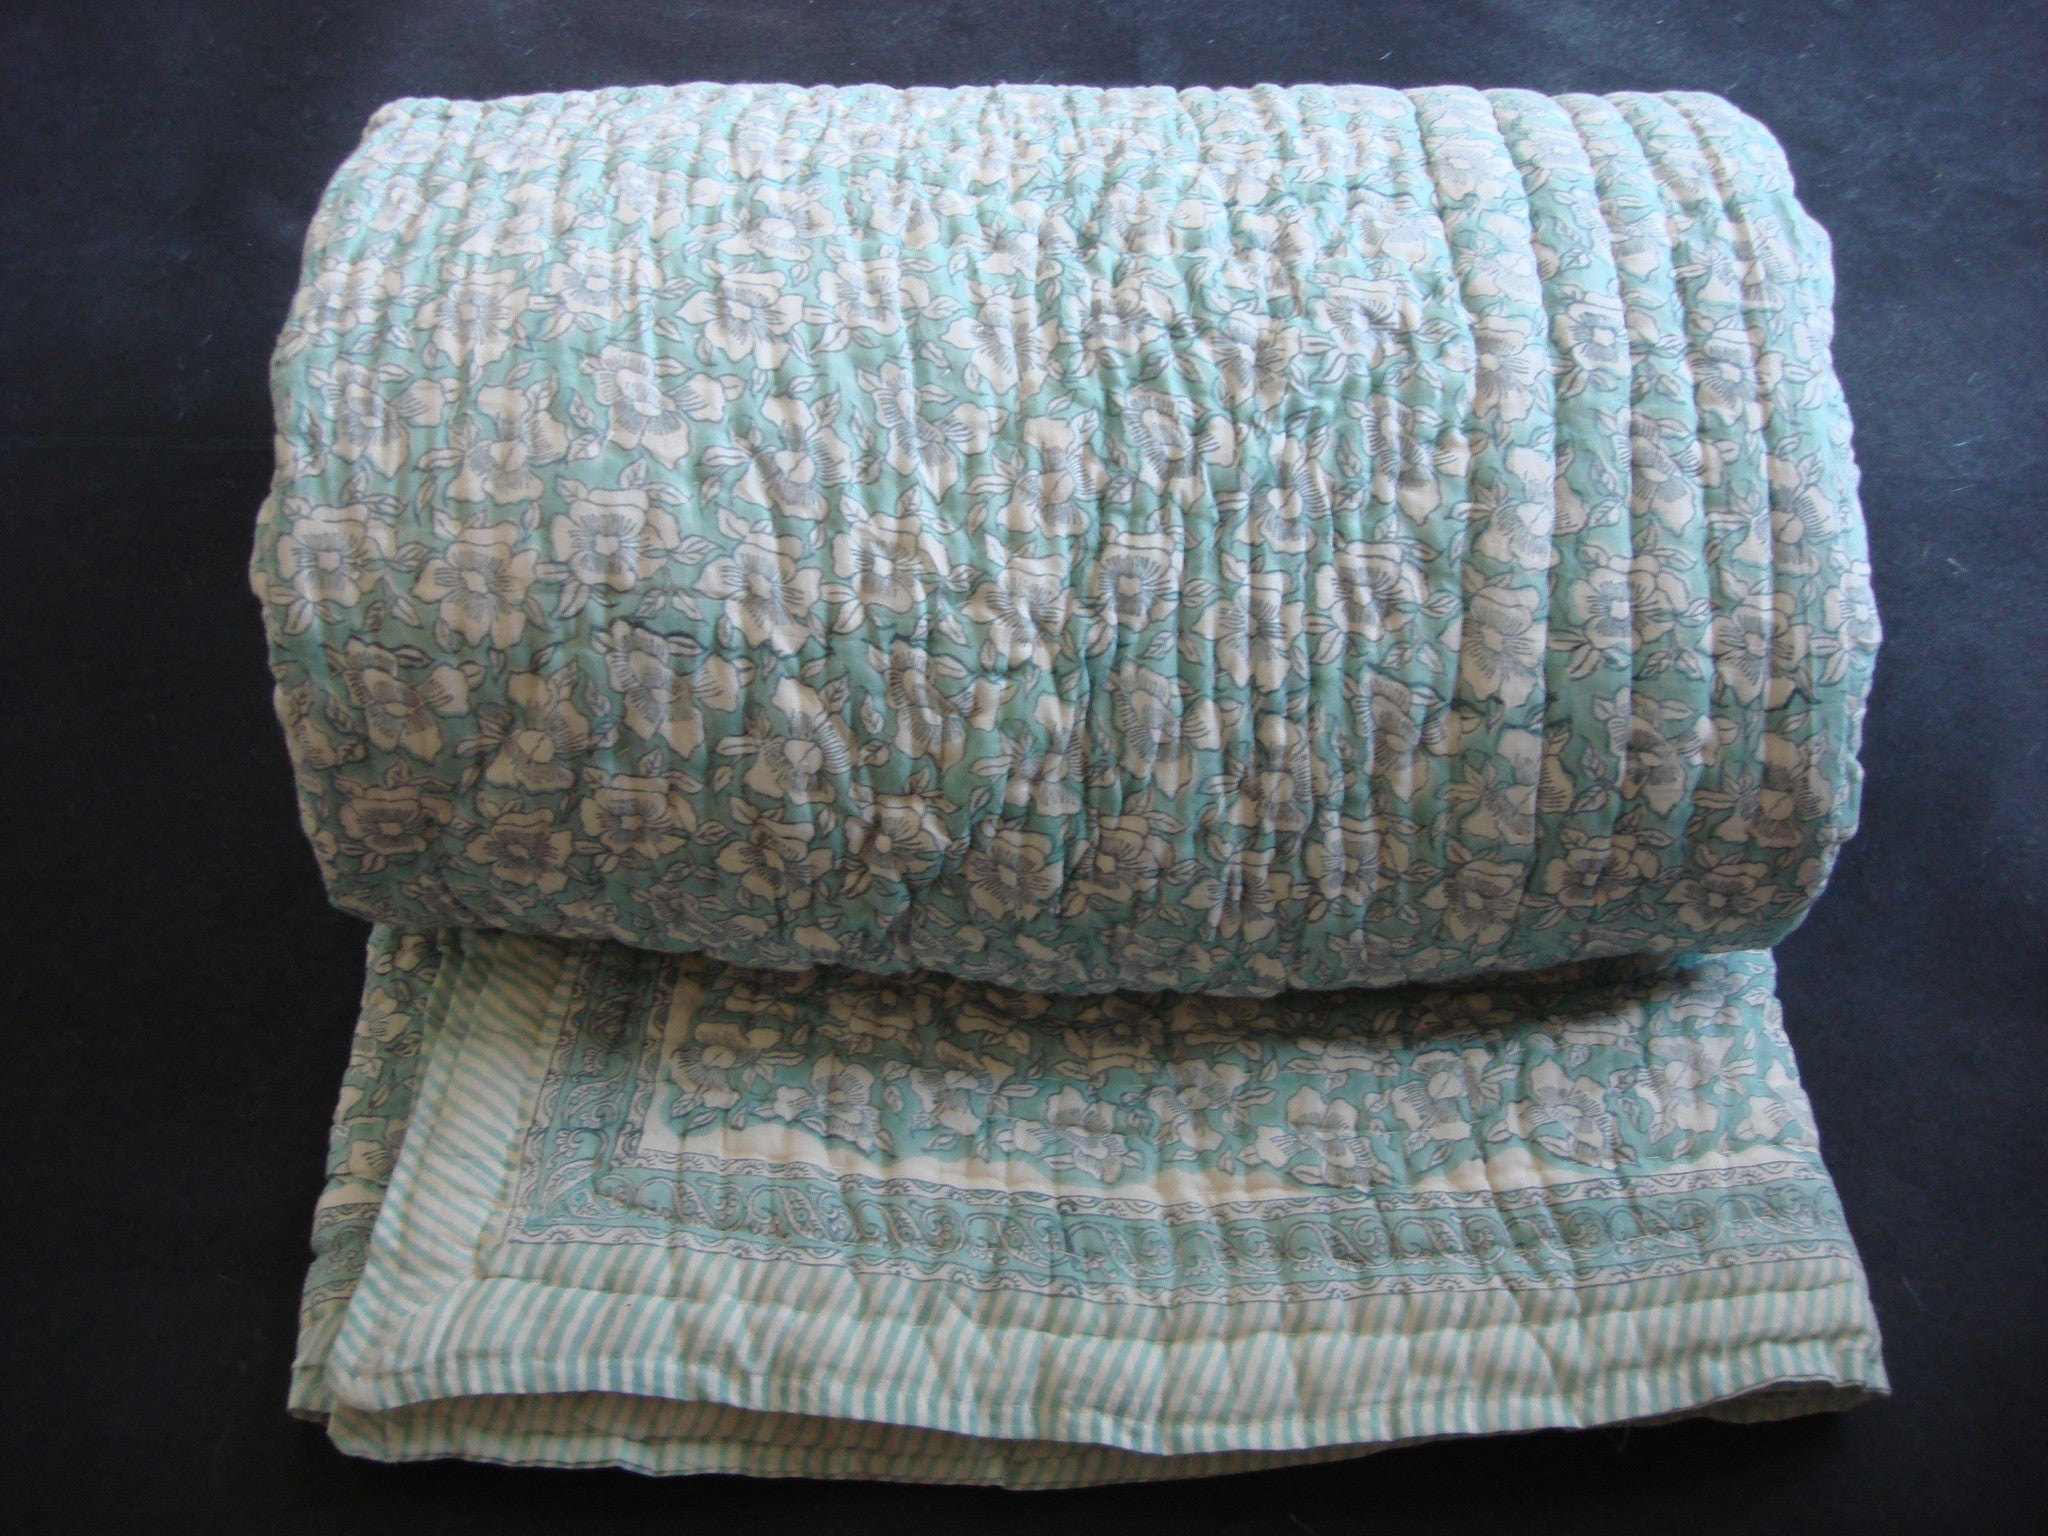 QBP 108 - Handmade, reversible, cotton, block printed quilt in sea green, intricate ethnic design. - Pentagon Crafts